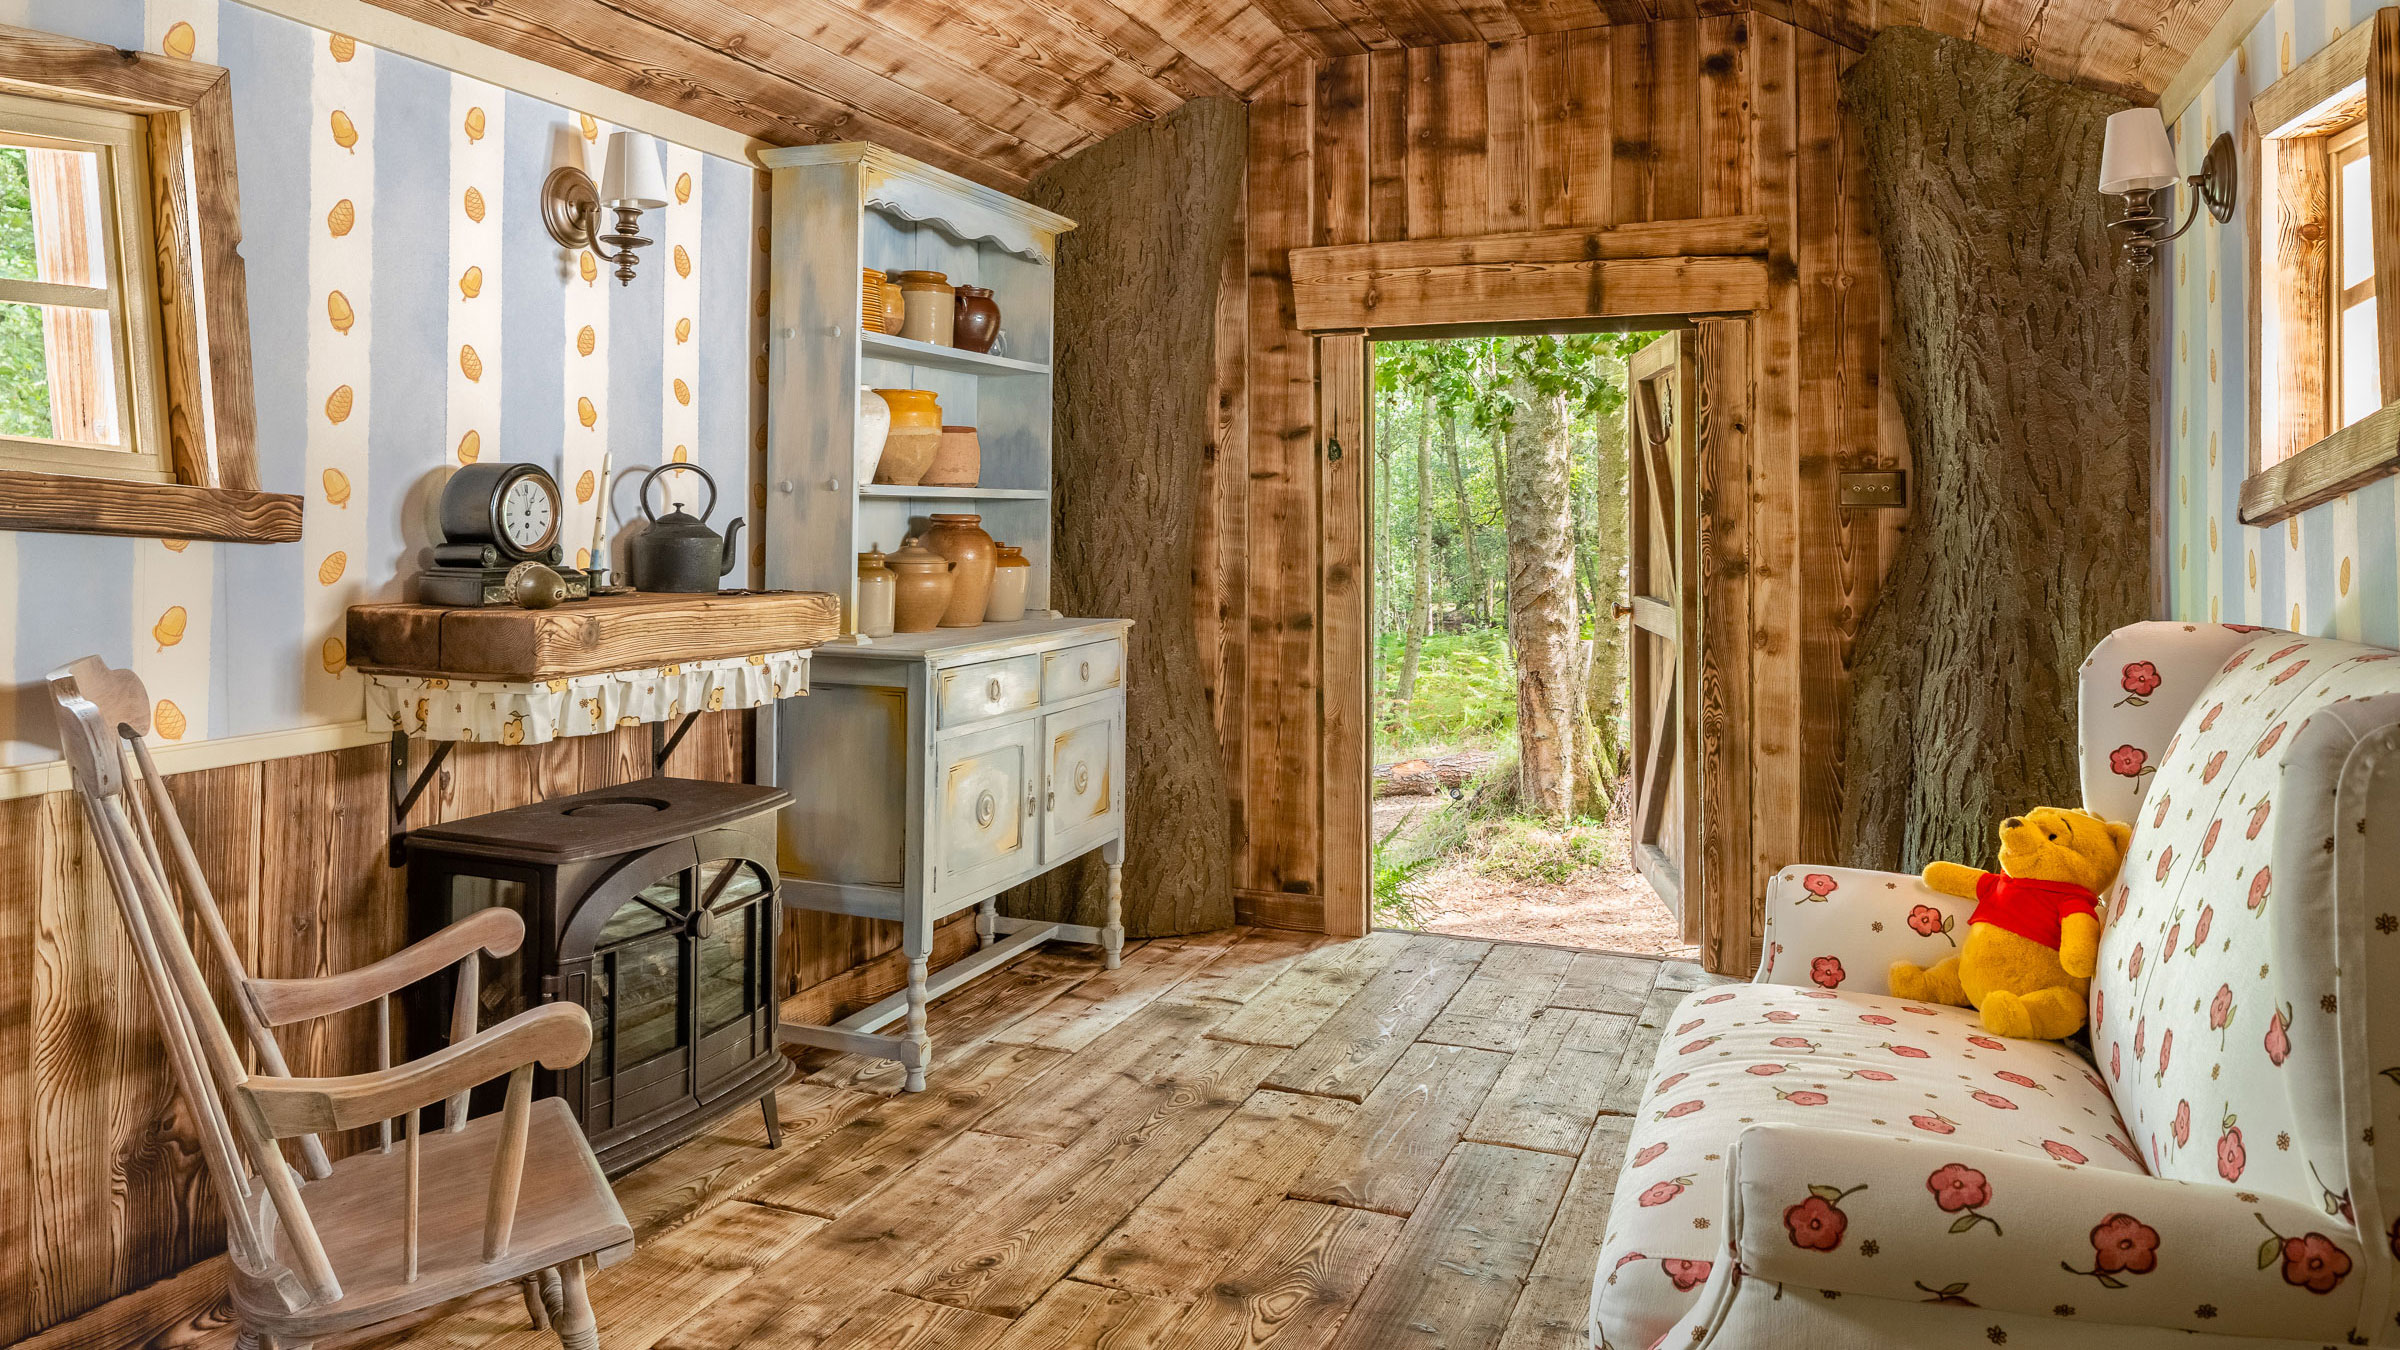 Winnie the Pooh's tree house for rent at this 'Bearbnb'   CNN Travel